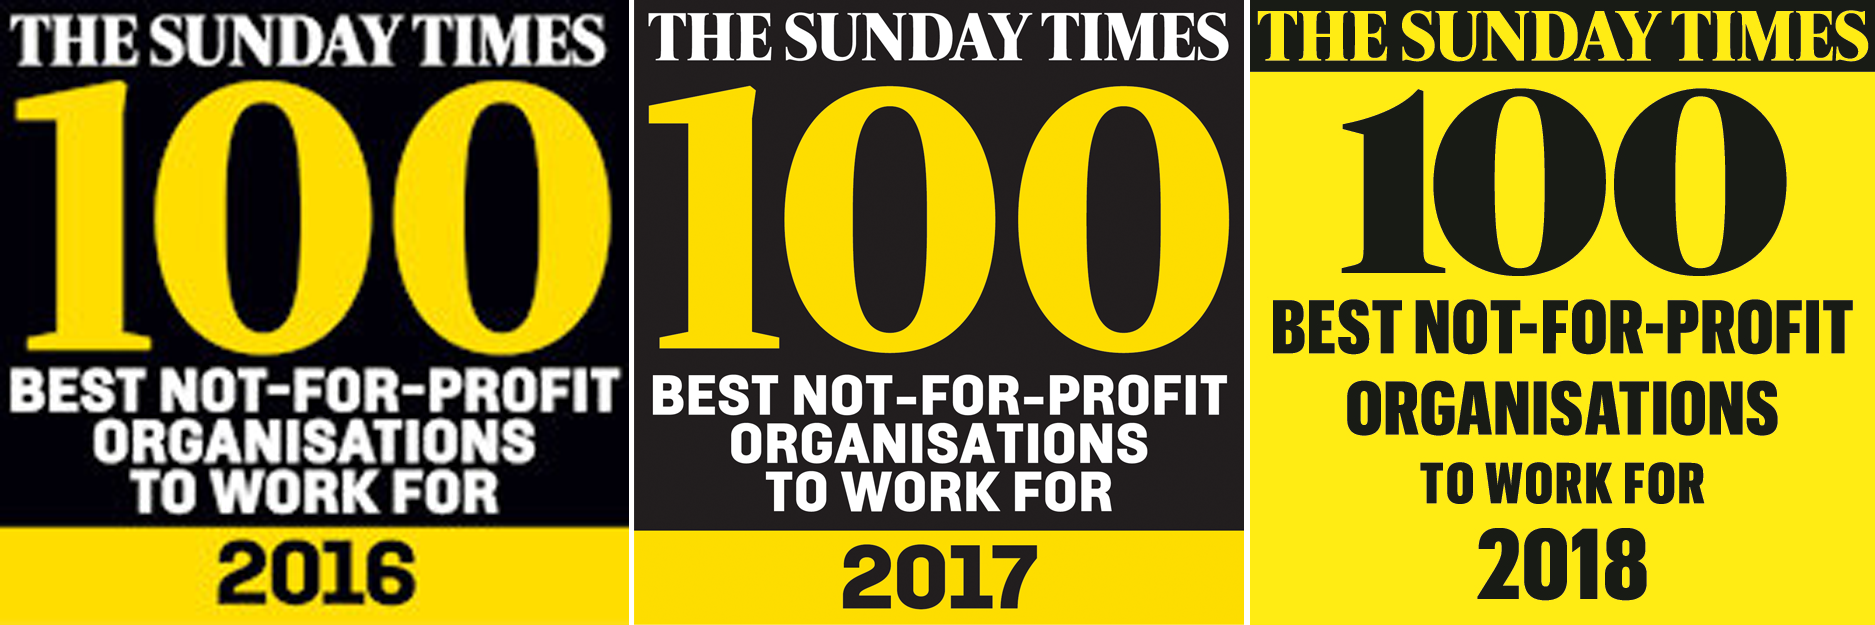 Sunday Times Top 100 Best Not-For-Profit Organisations to Work For Health and Wellbeing Special Award 2016